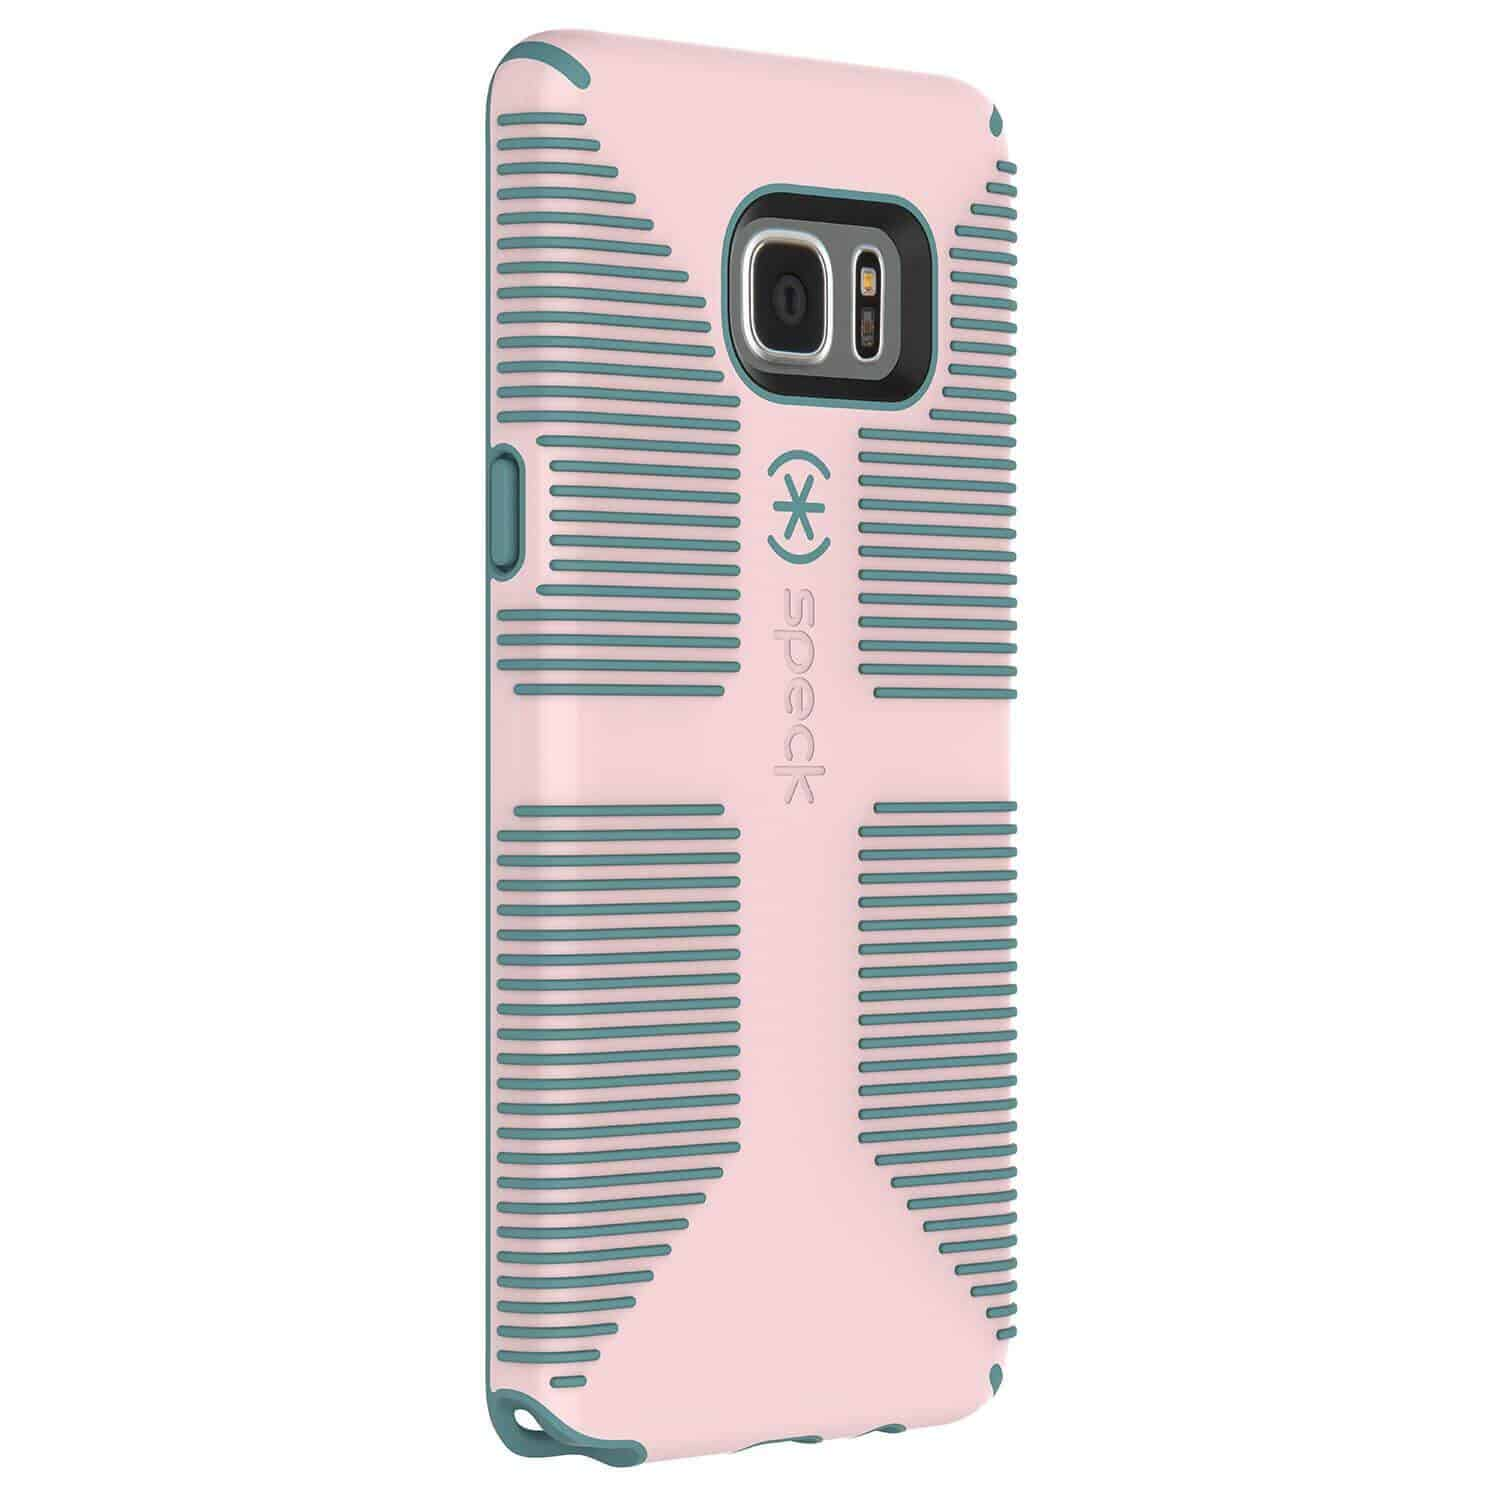 Speck CandyShell Case Galaxy Note 7 KK (14)